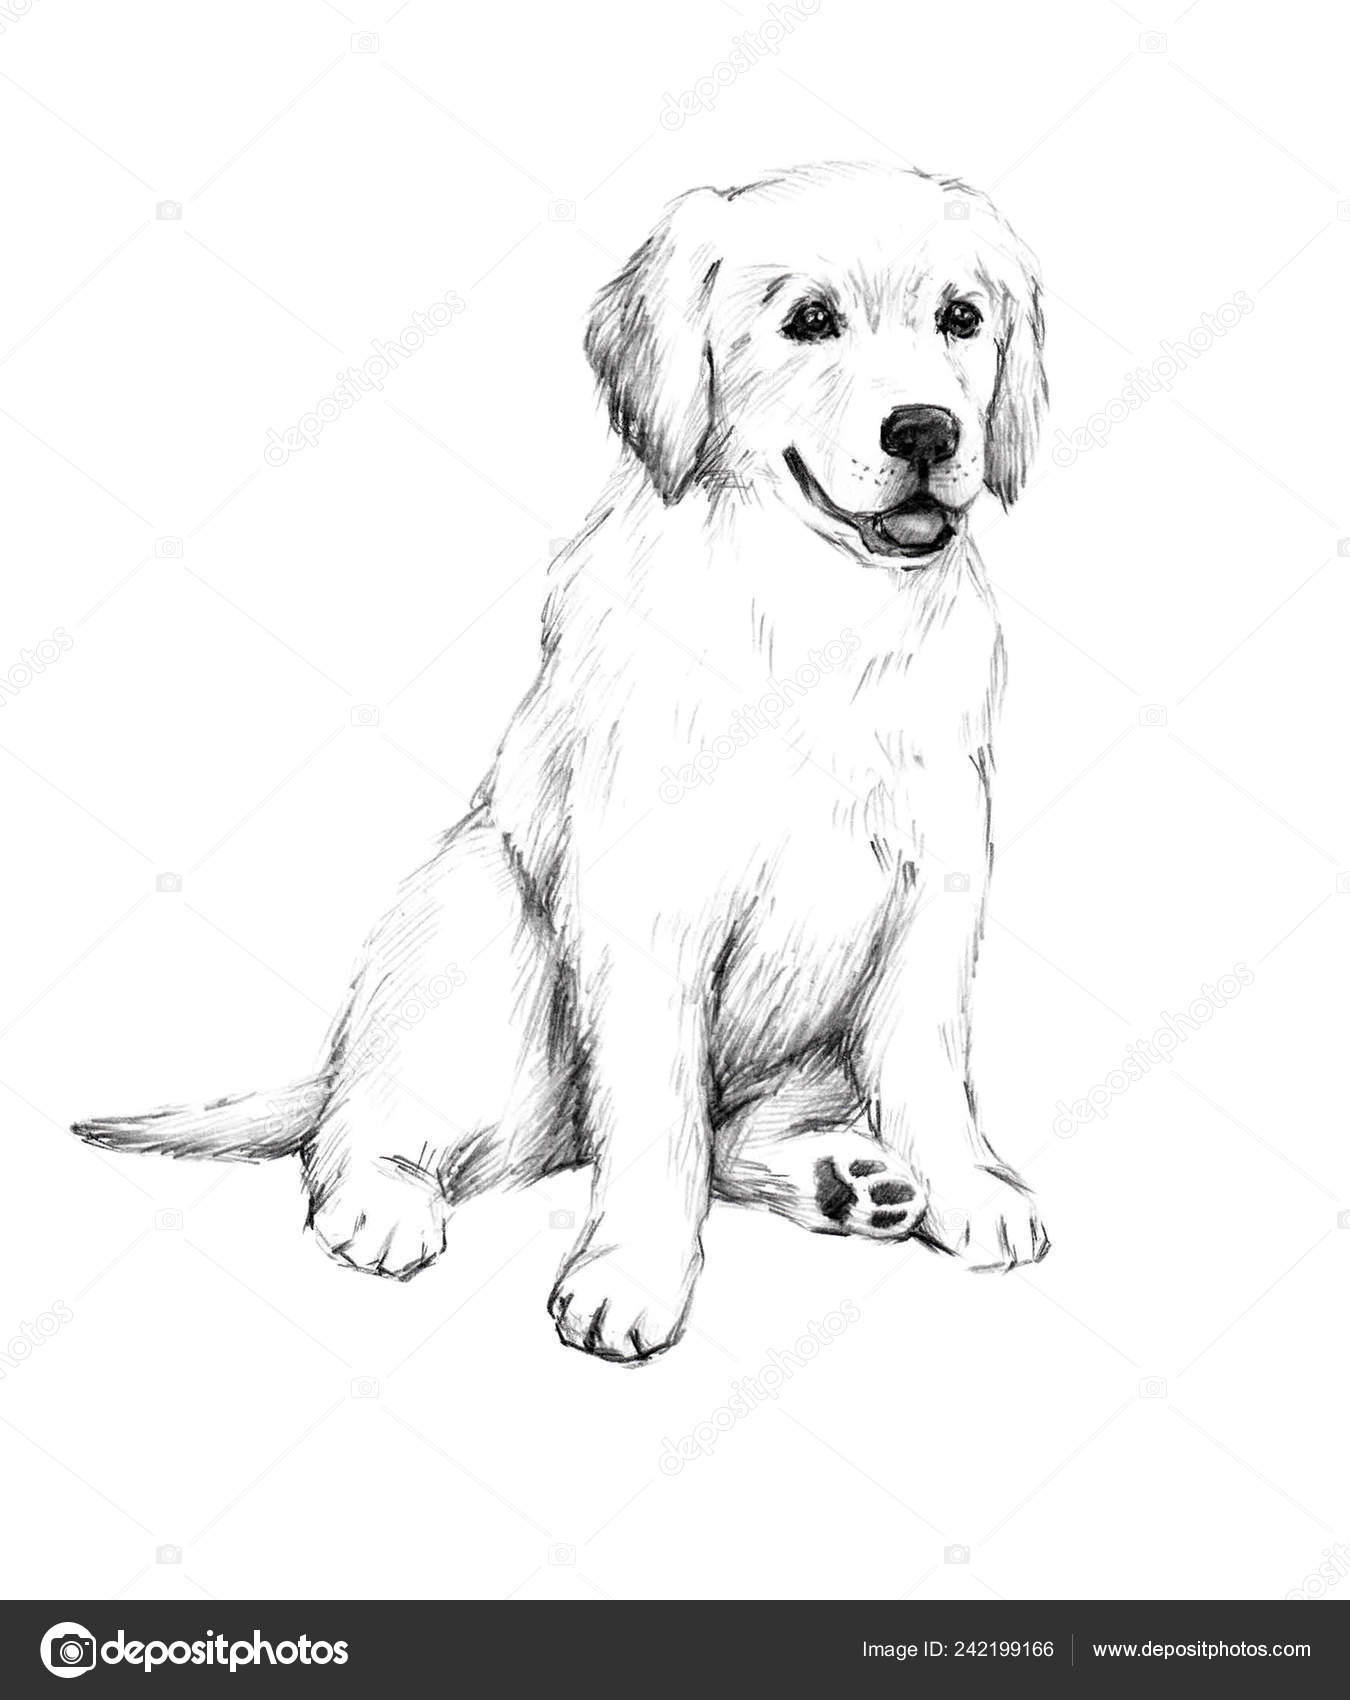 Animal sketch pencil drawing dog cute little puppy illustration pet